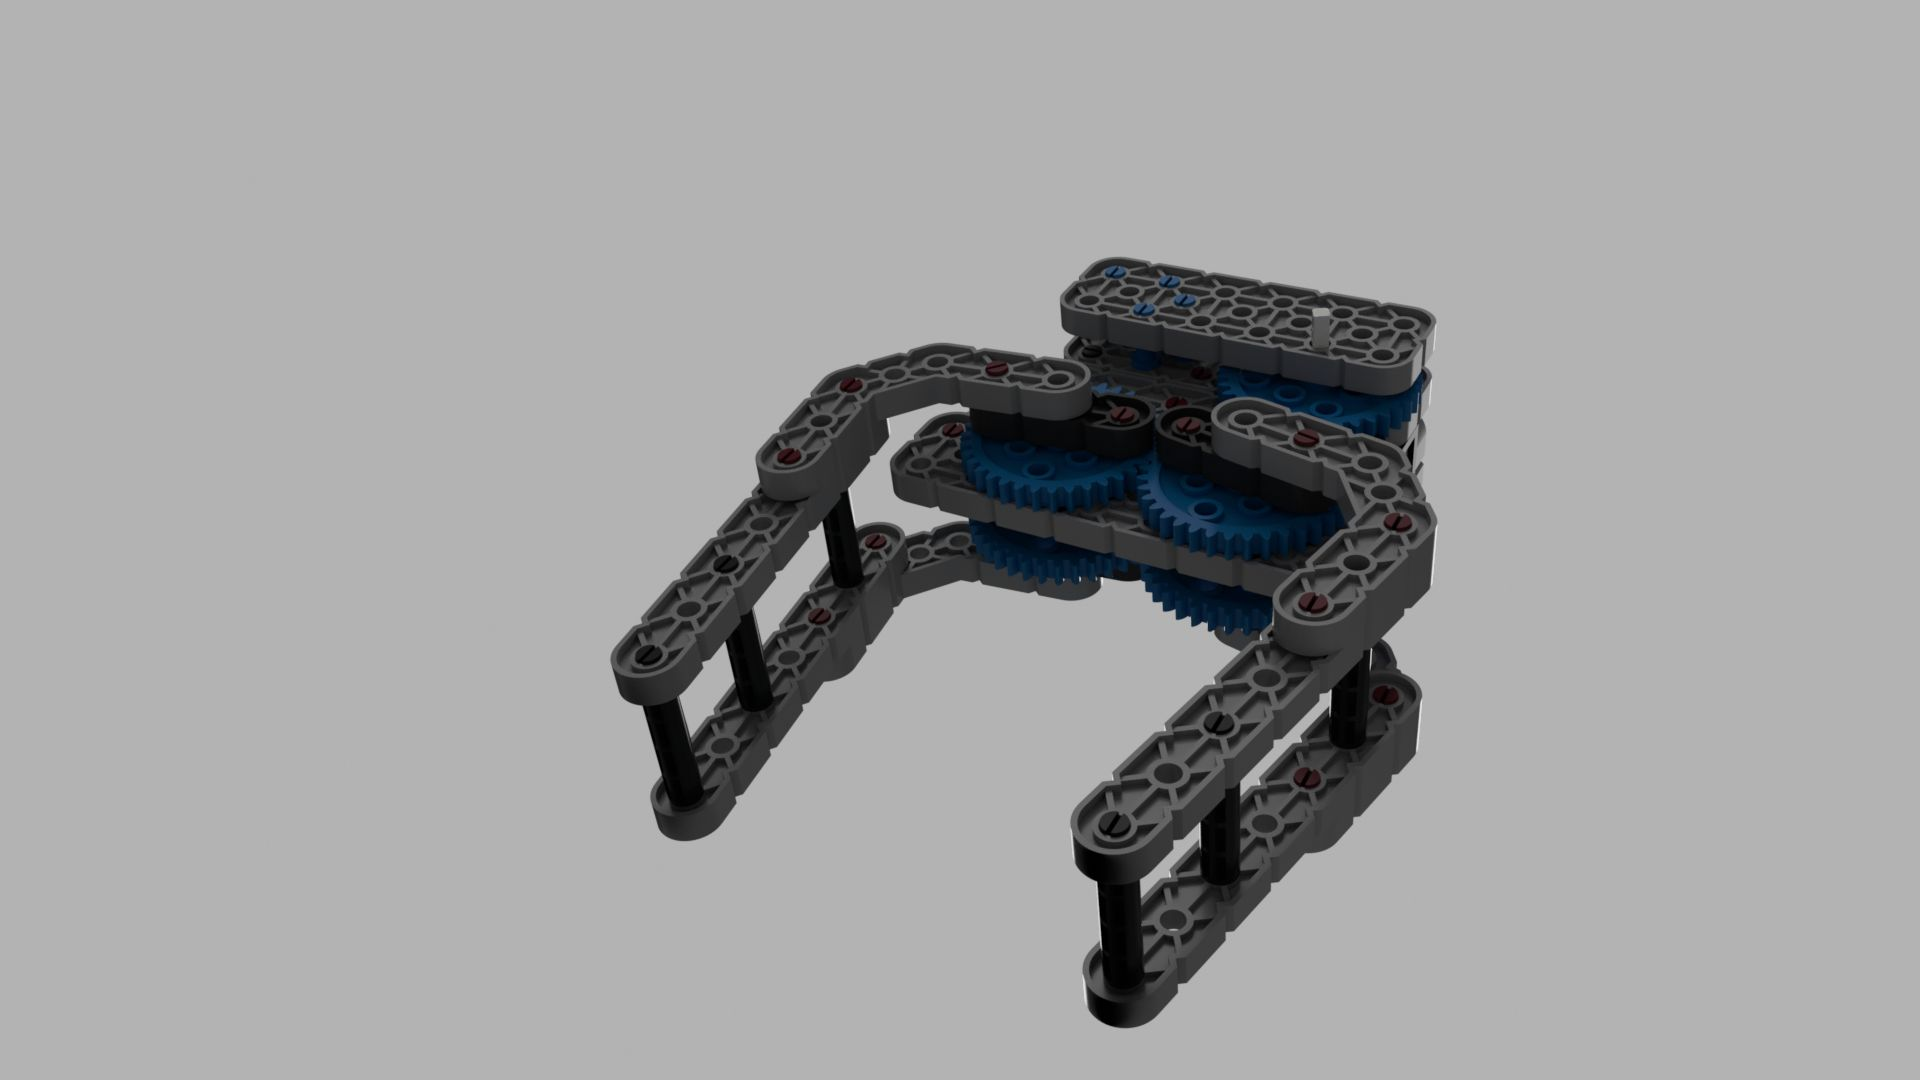 Garra-robotica-vex-iq-2016-oct-06-02-05-58pm-000-customizedview15388410932-3500-3500